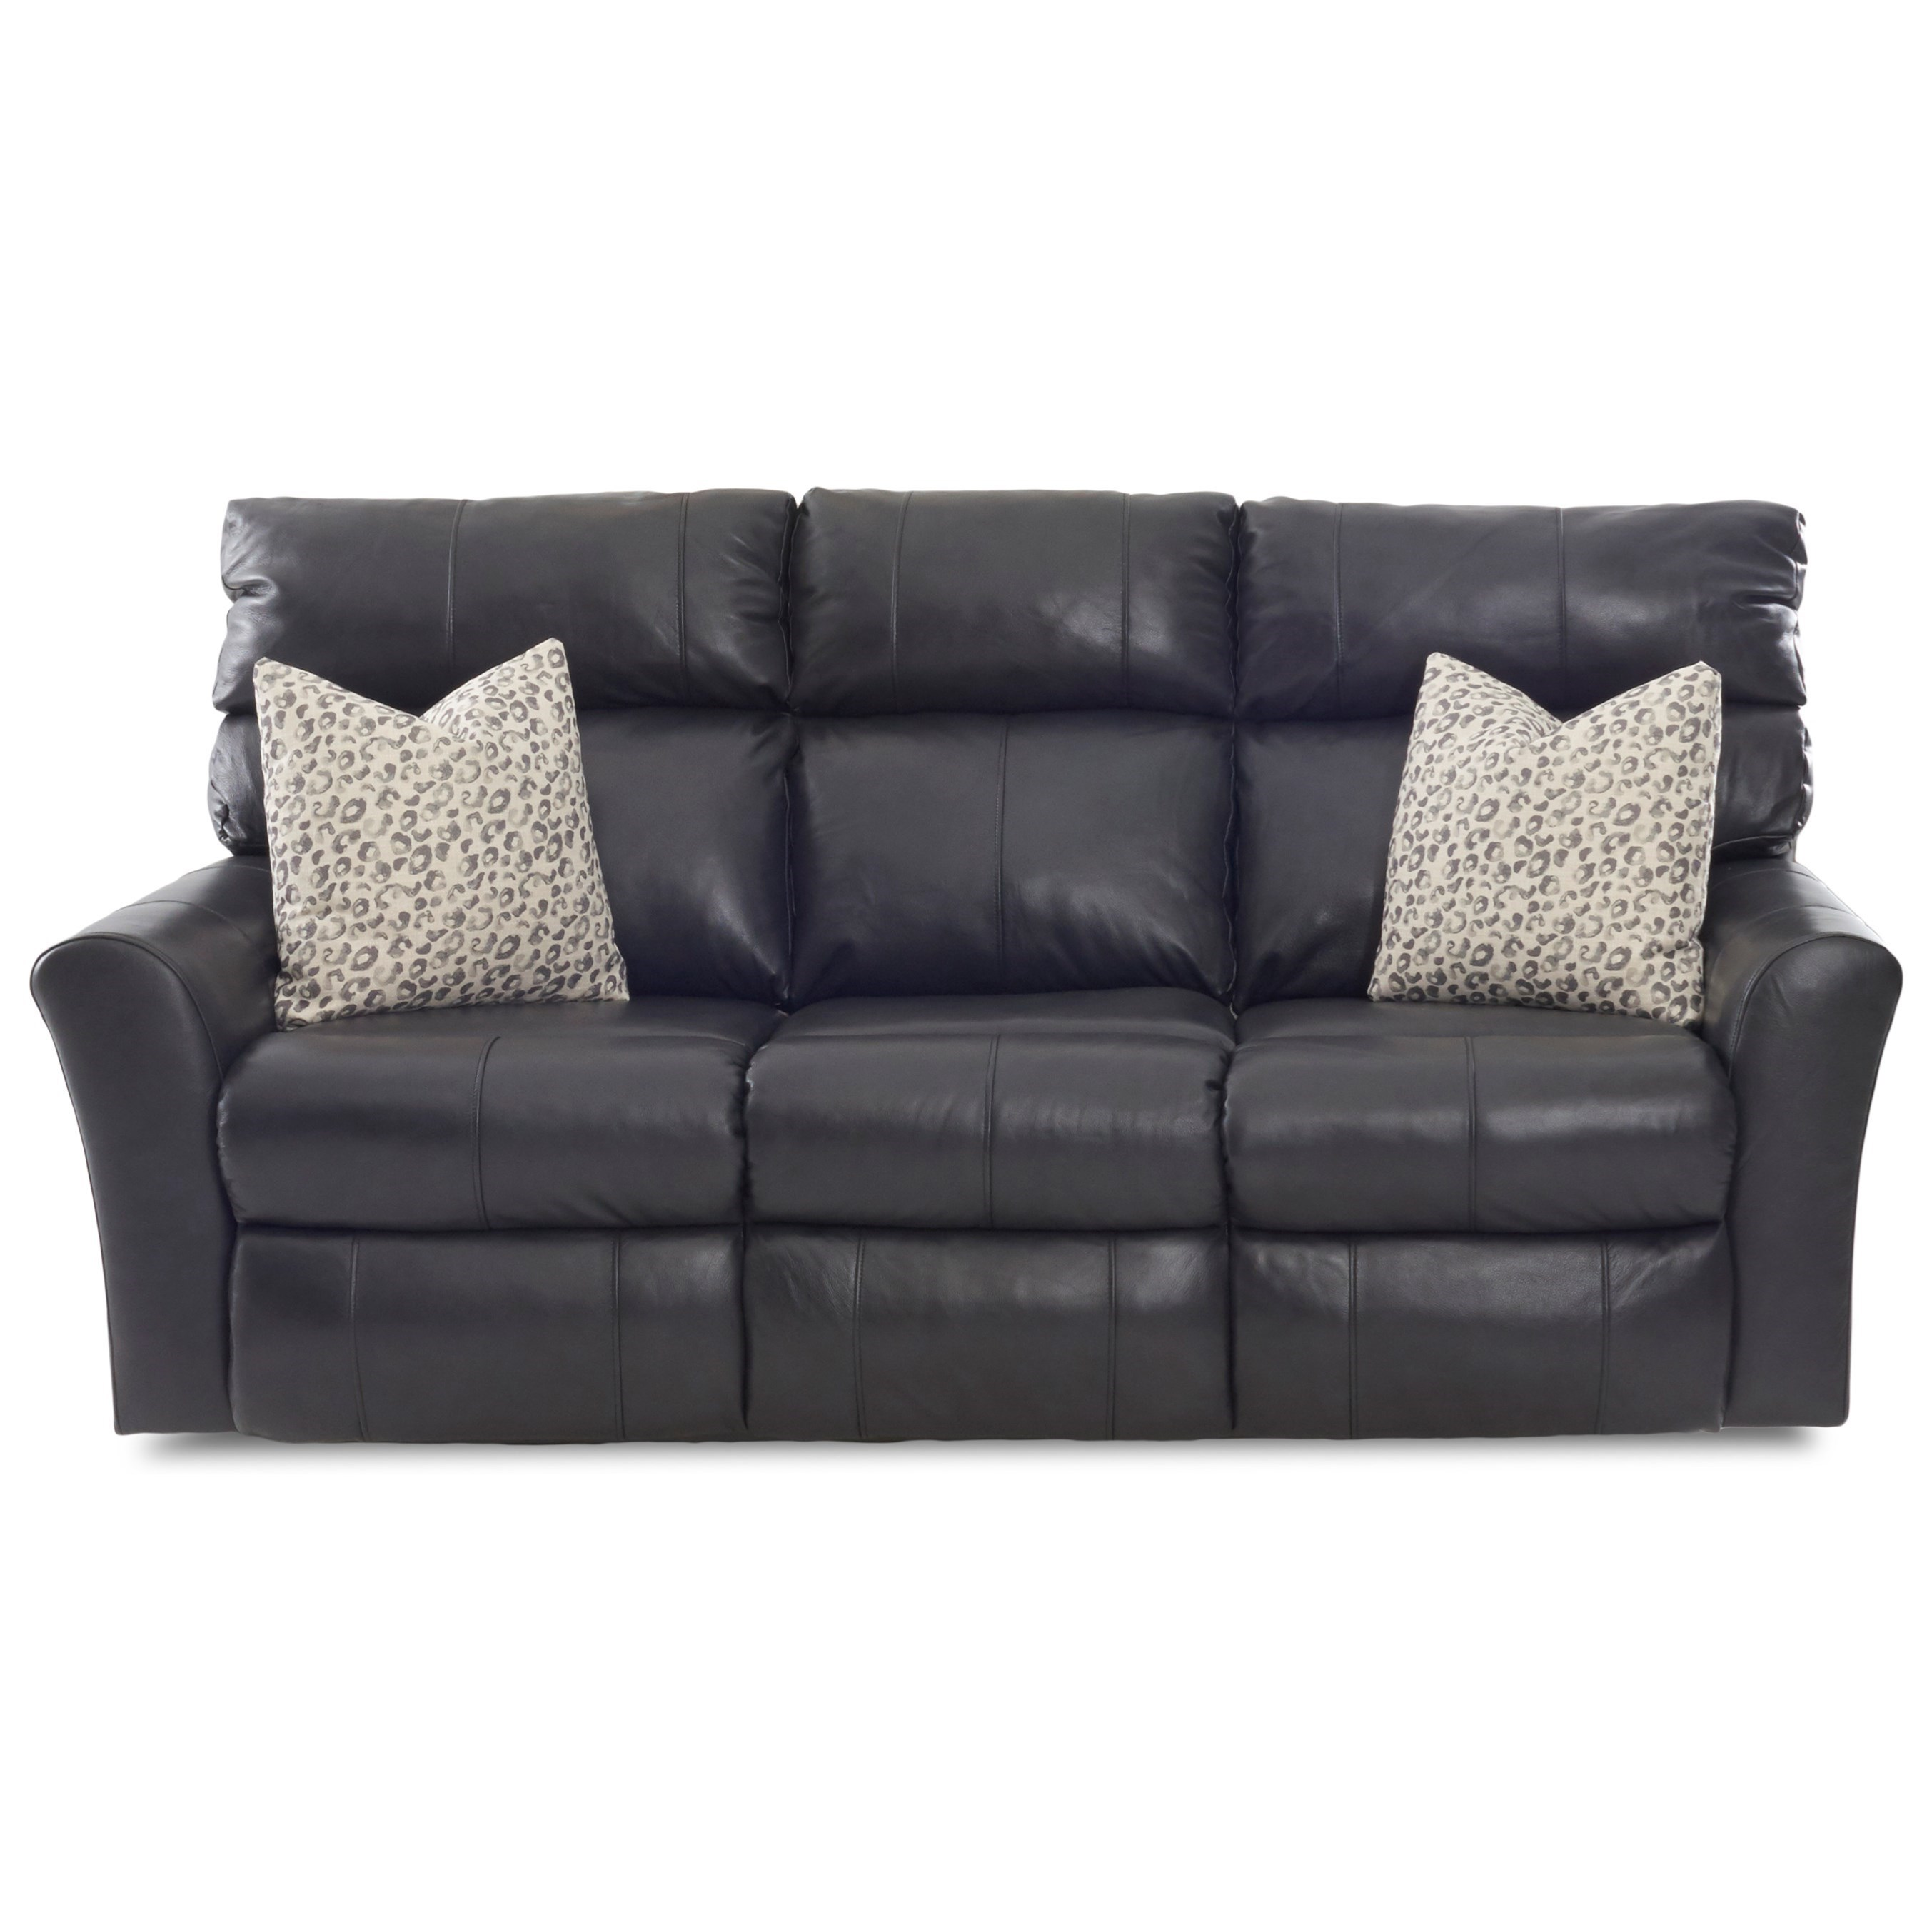 Casual Reclining Sofa (2 Recliners) with Toss Pillows